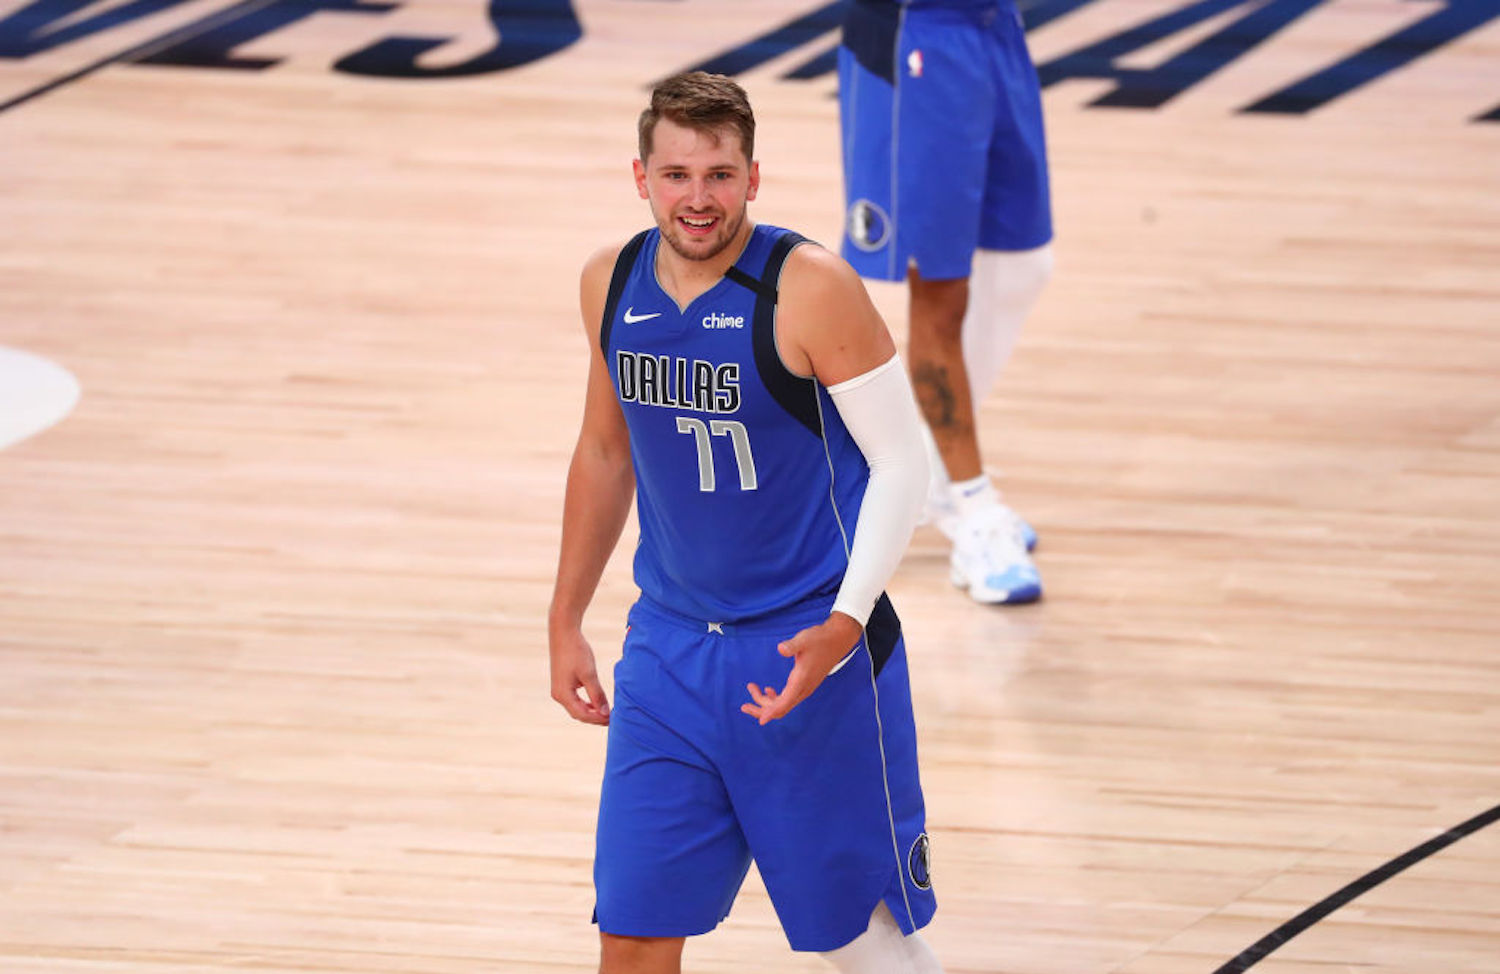 Luka Doncic was just named to the All-NBA First Team for the 2019-20 season, and he passed LeBron James in the process.